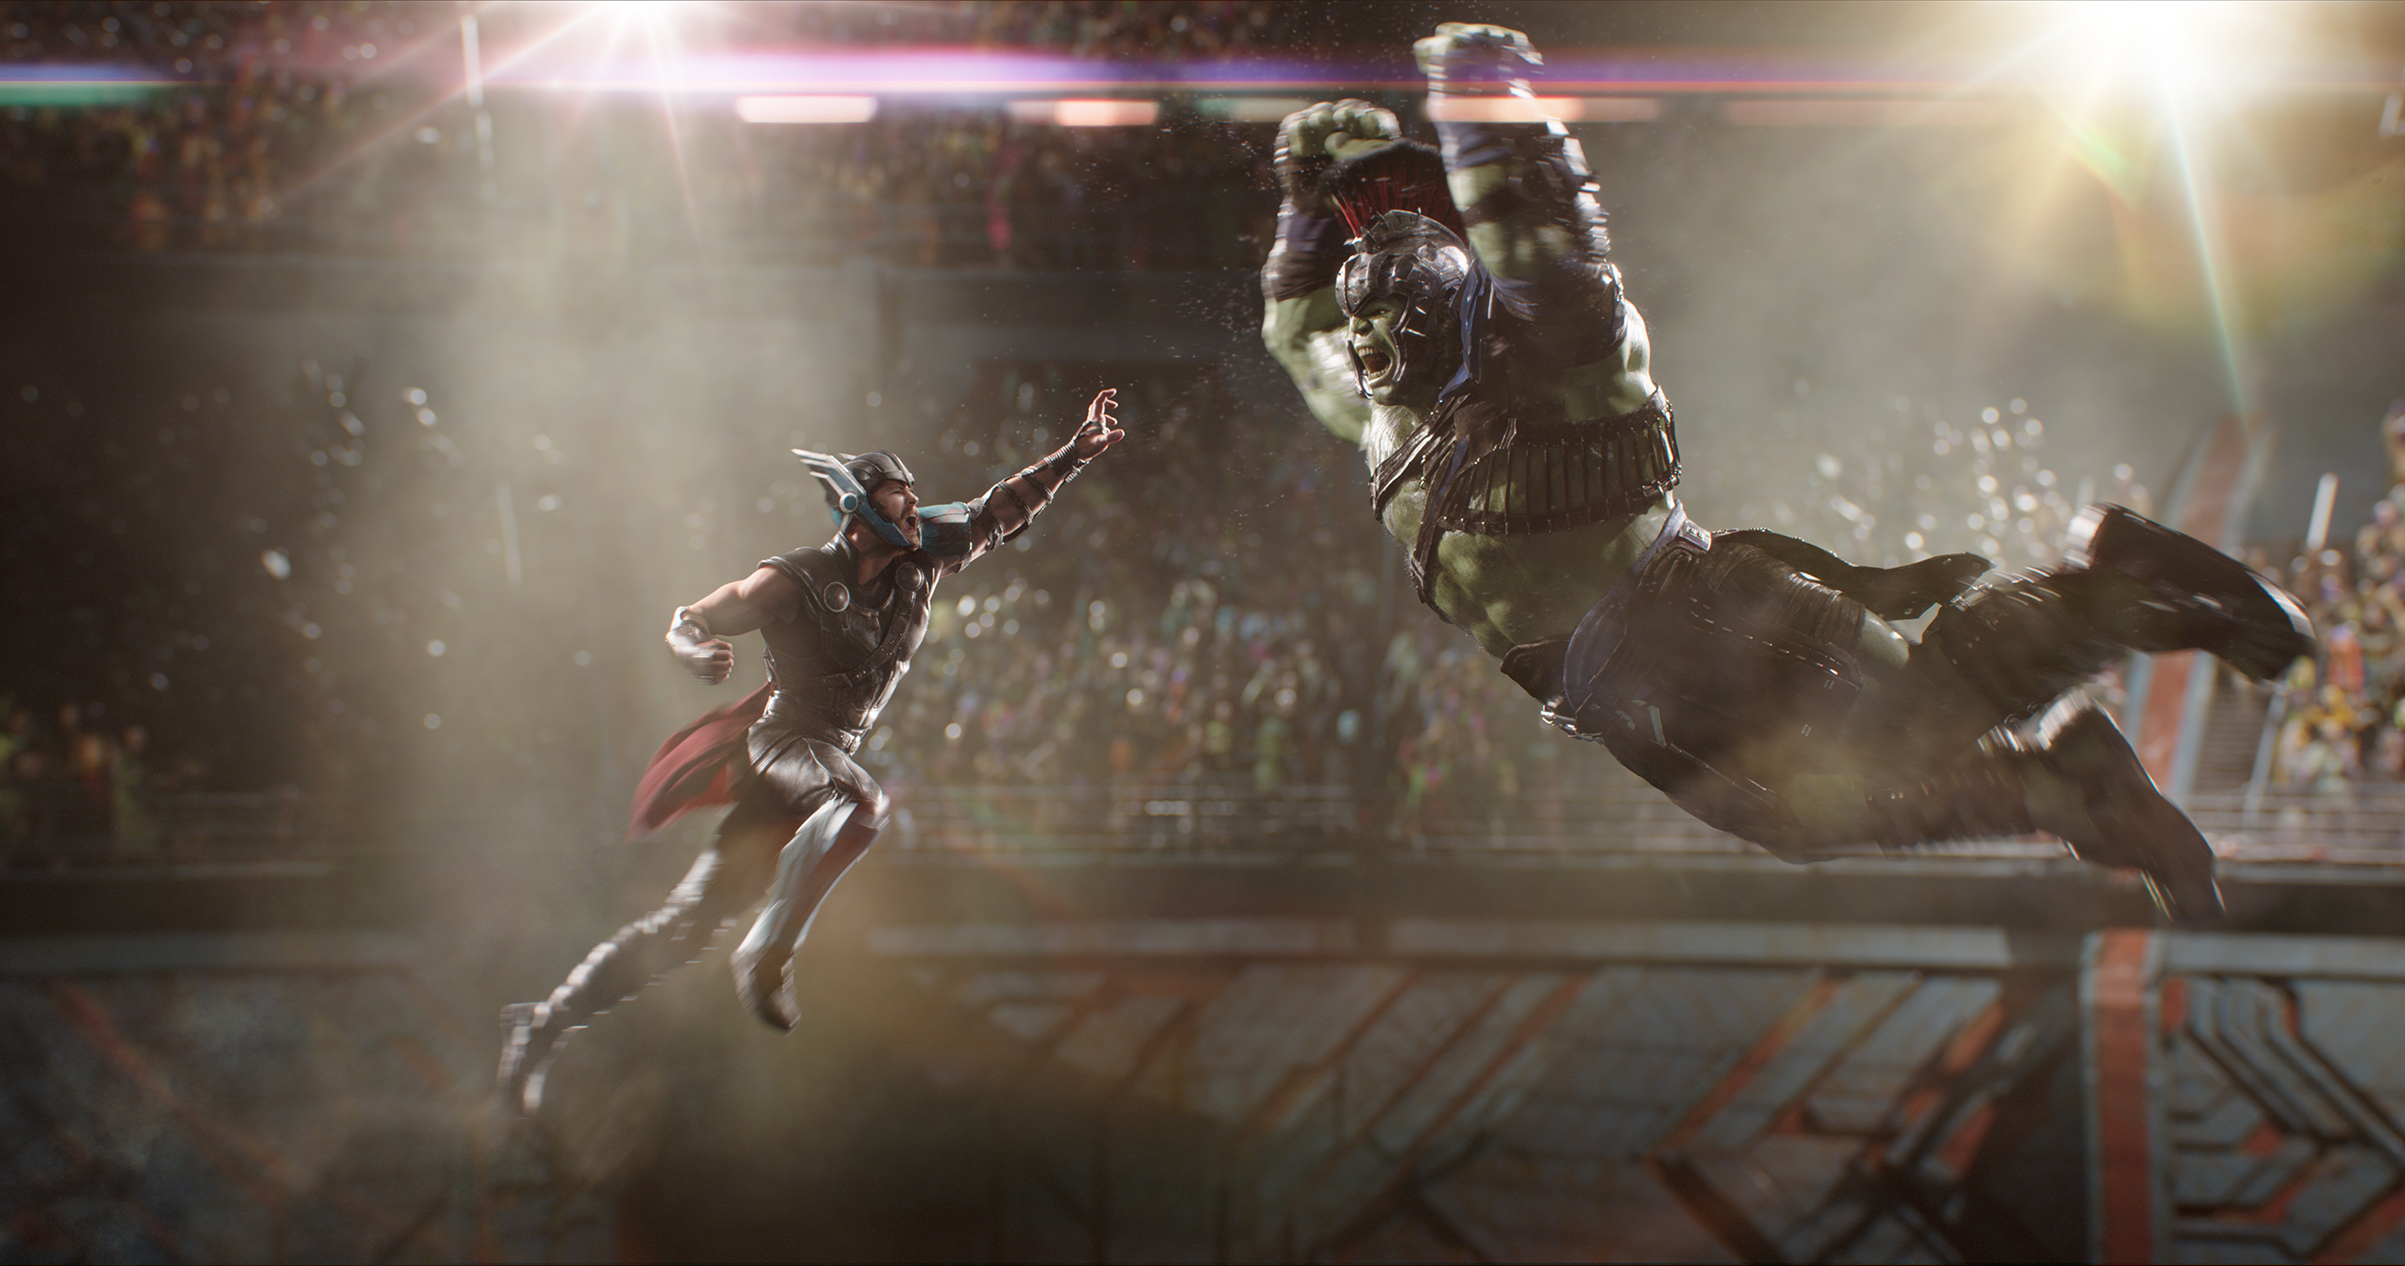 Thor (Hemsworth)and the Hulk (Ruffalo)finally answer the question